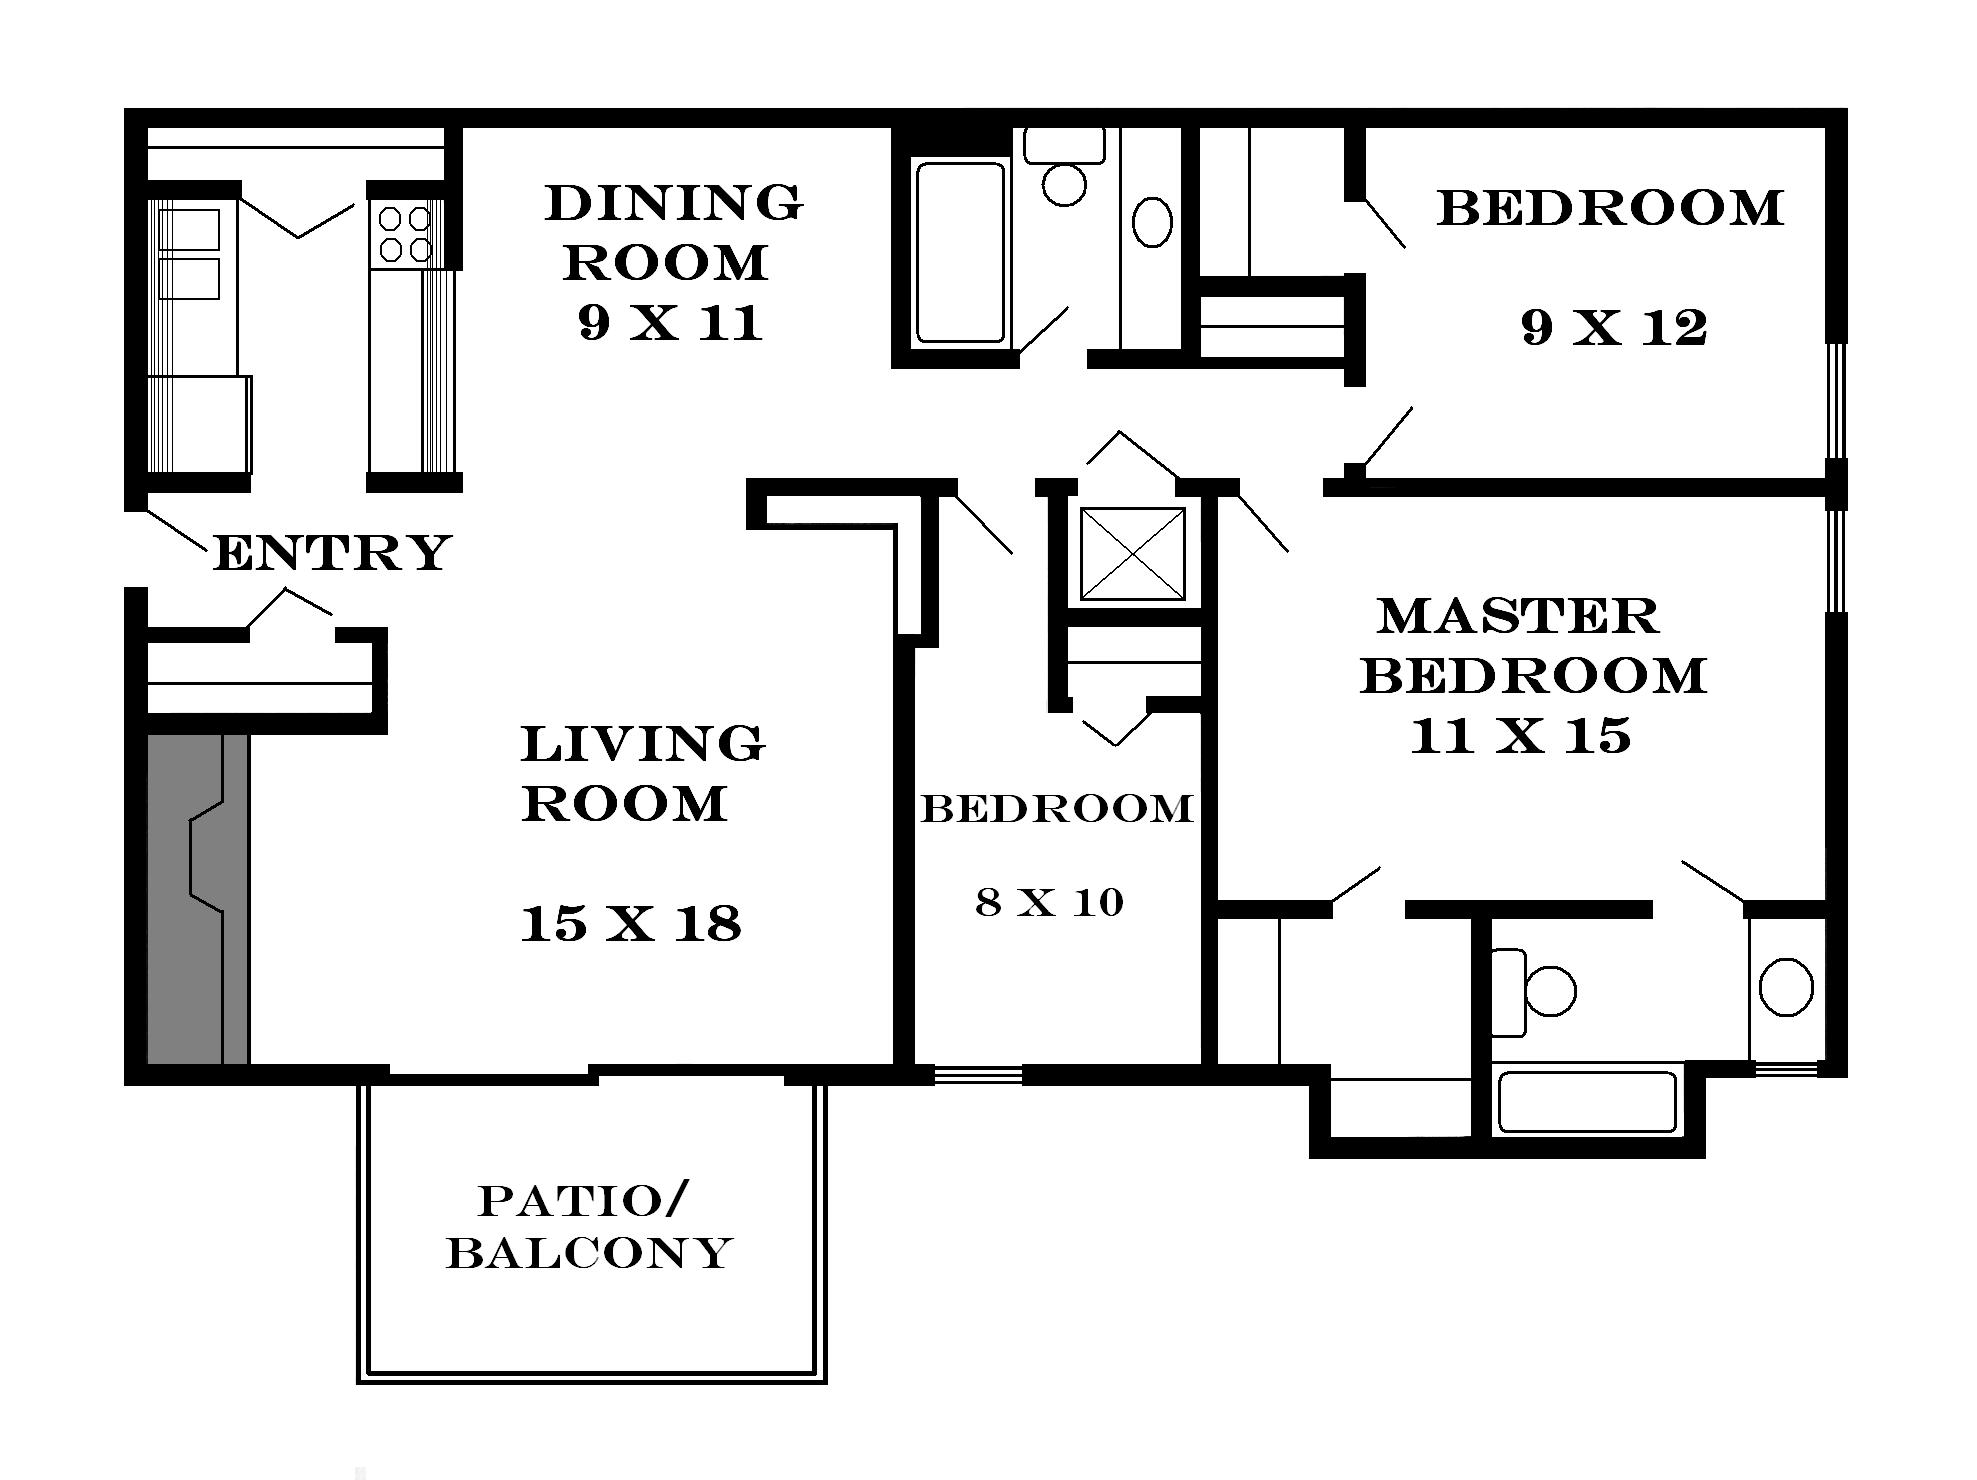 Lawrence apartments meadowbrook 2601 dover square How to calculate room size in square feet